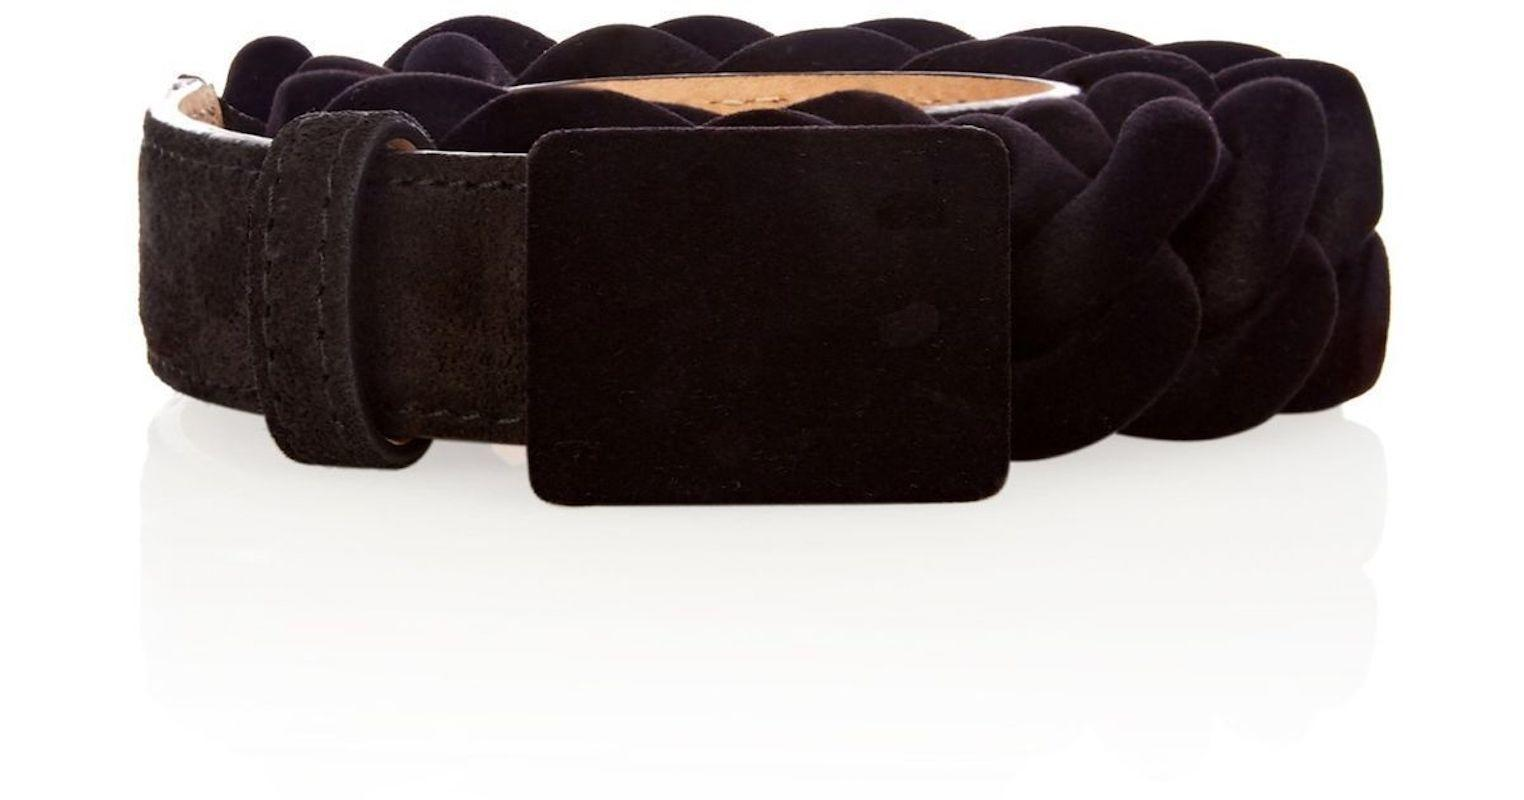 Small Leather Goods - Belts Marco De Vincenzo GQ2kc